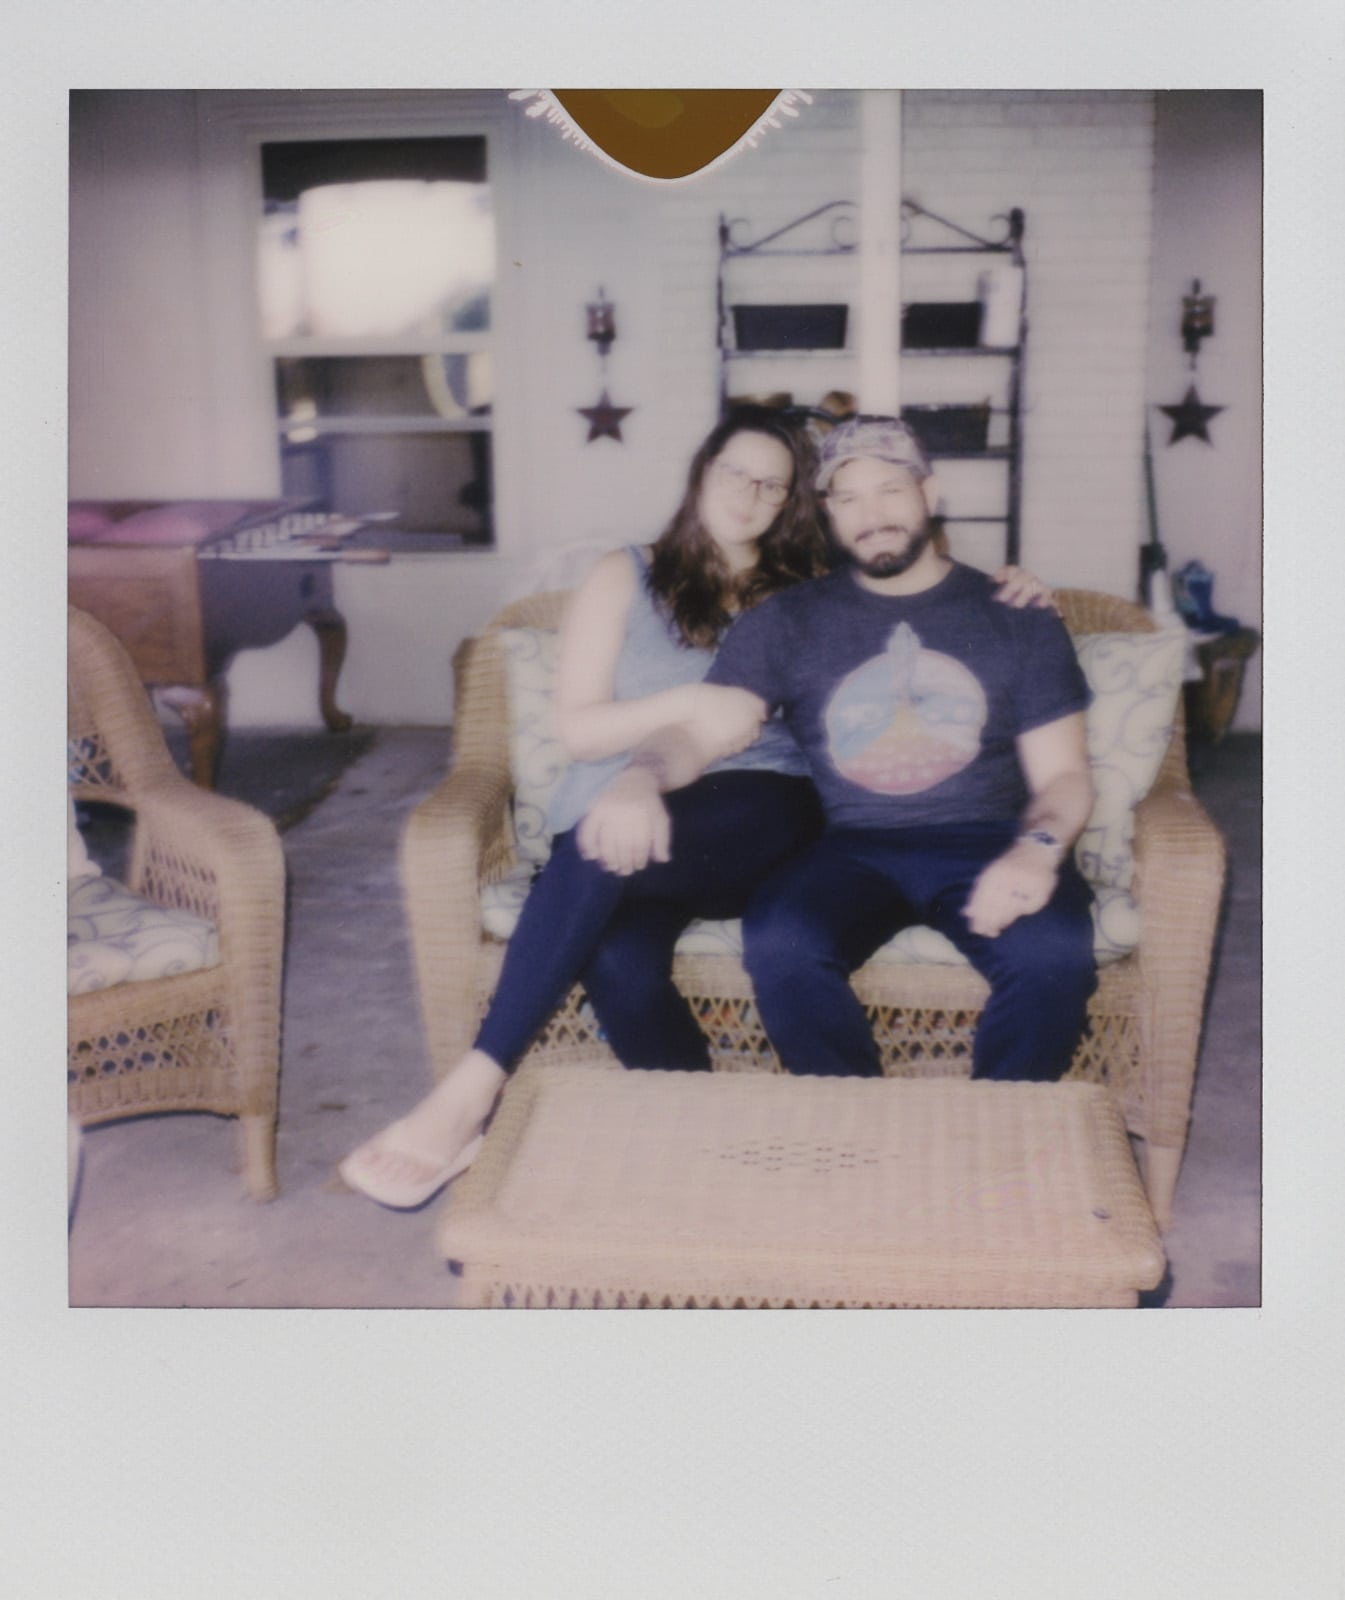 Us on our last day there Polaroid photos